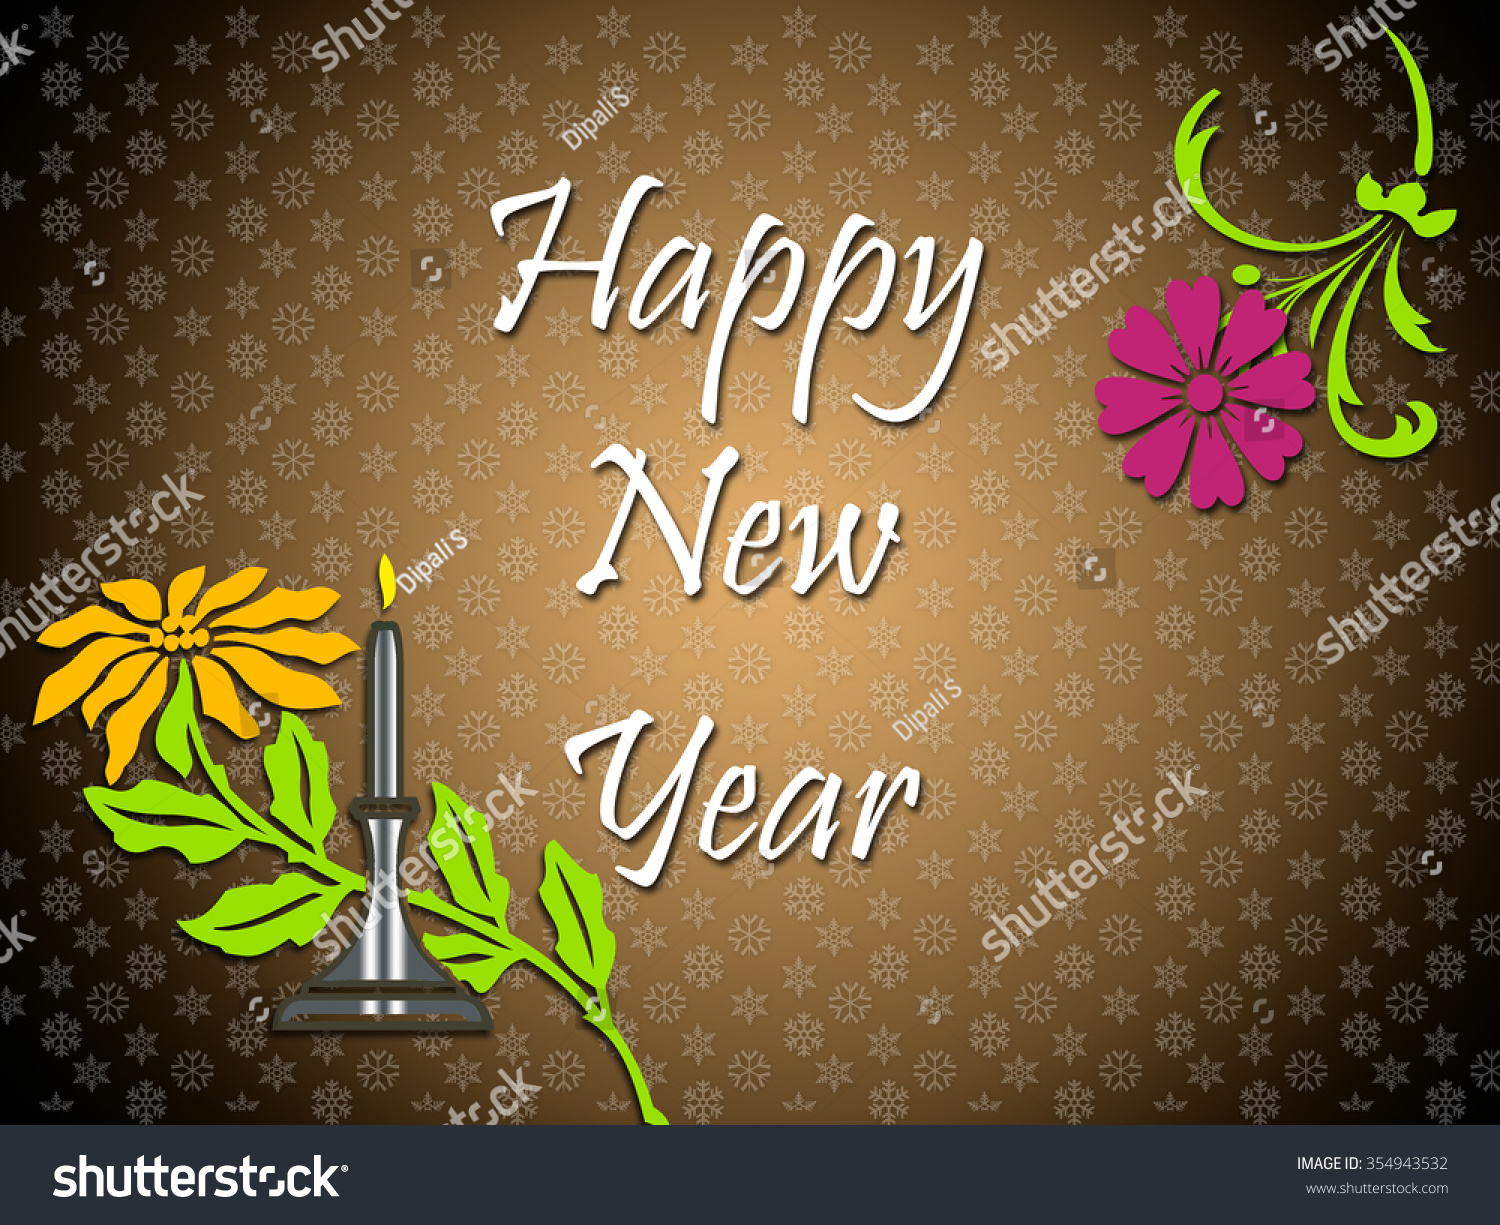 happy new year on a color background with snowflakes and flowers